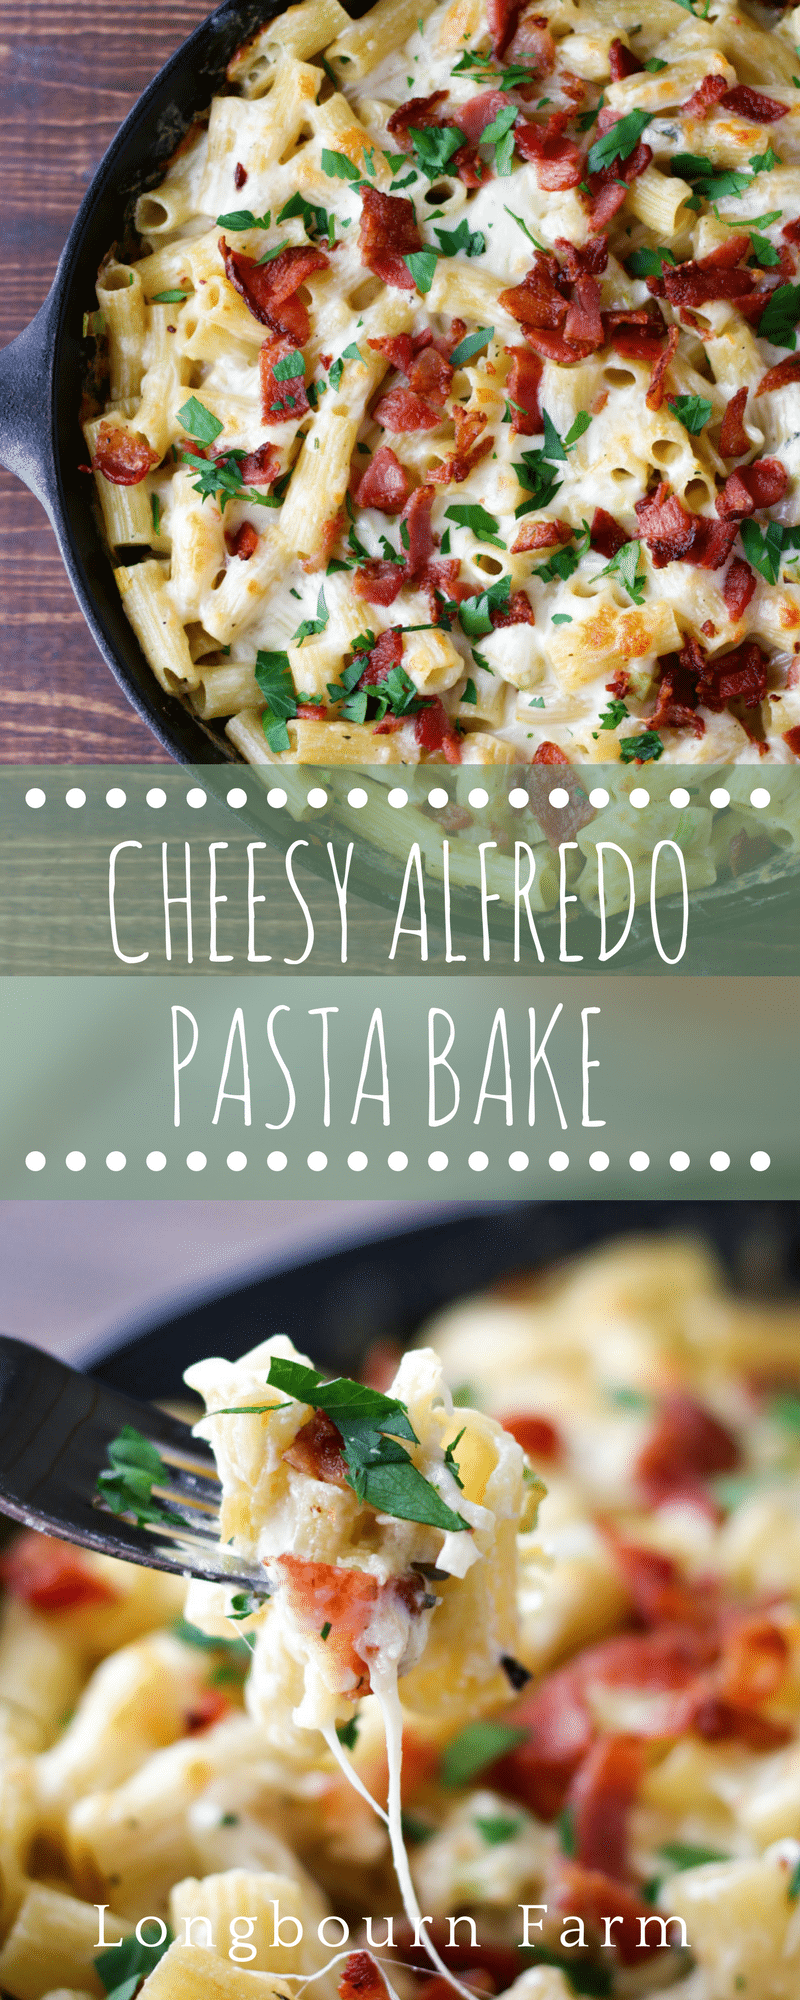 This cheesy alfredo pasta bake recipe is made all in one skillet and only takes 25 minutes to make. Bubbly cheese outside, creamy cheesy pasta inside.